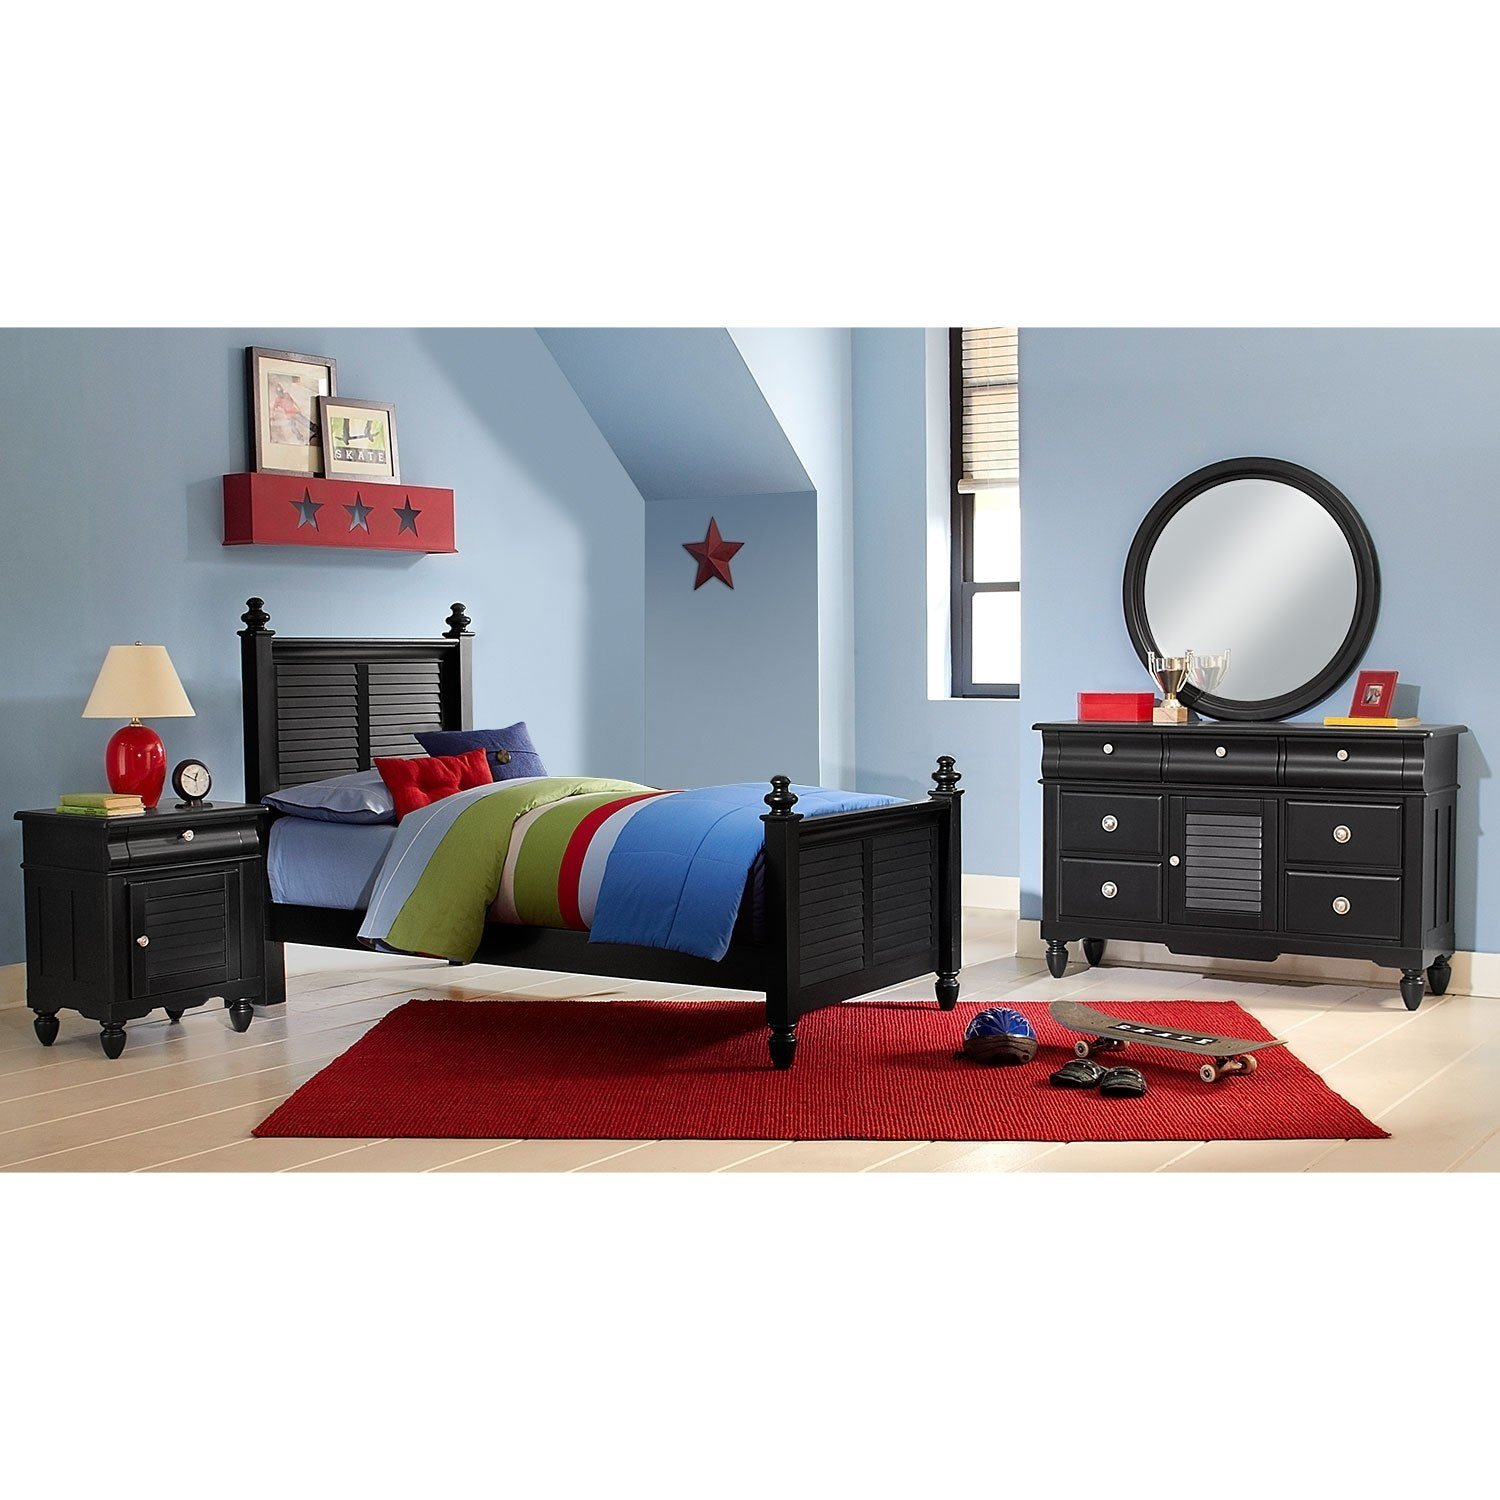 Best Shop 6 Piece Bedroom Sets Value City Furniture With Pictures